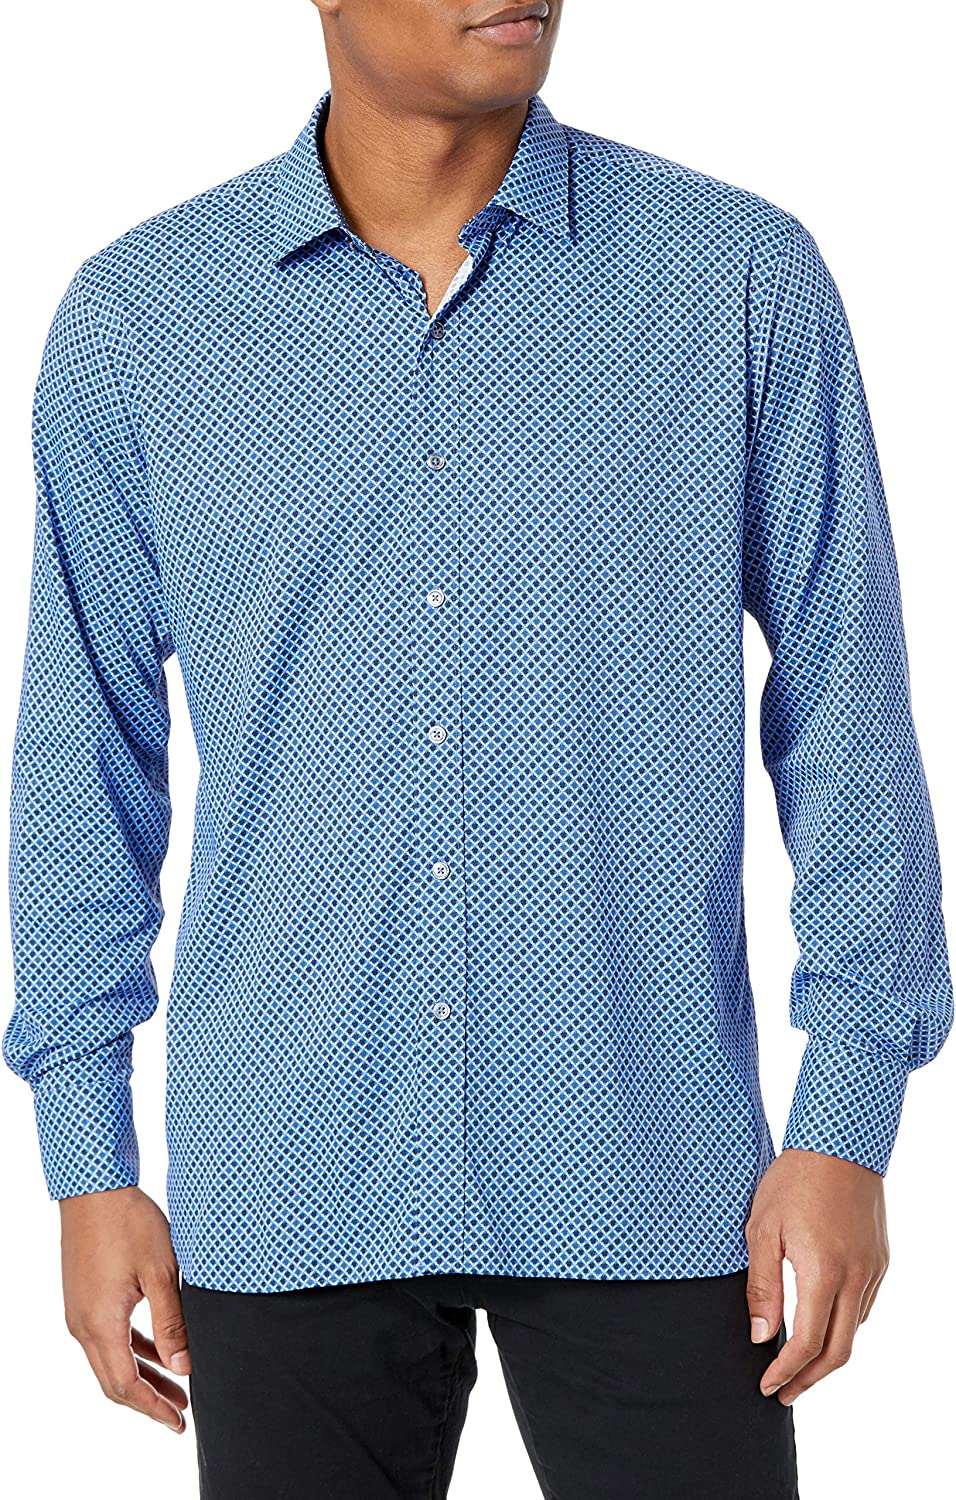 Bugatchi Men's Long Sleeve Point Collar Shaped Performance Woven